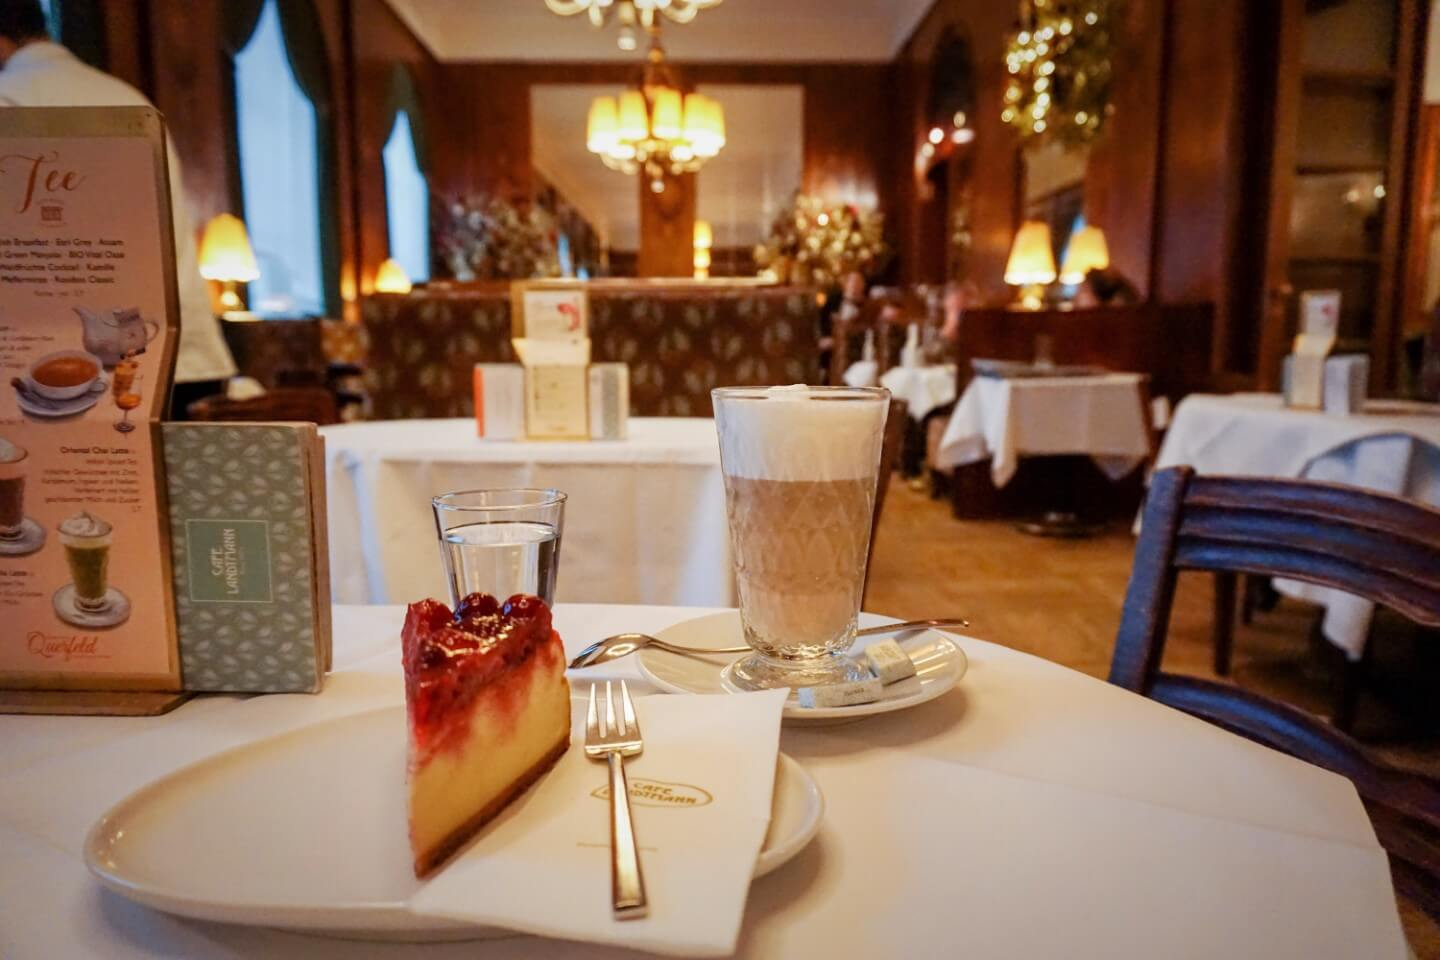 Café Landtmann, Best Things to Do in Vienna in January